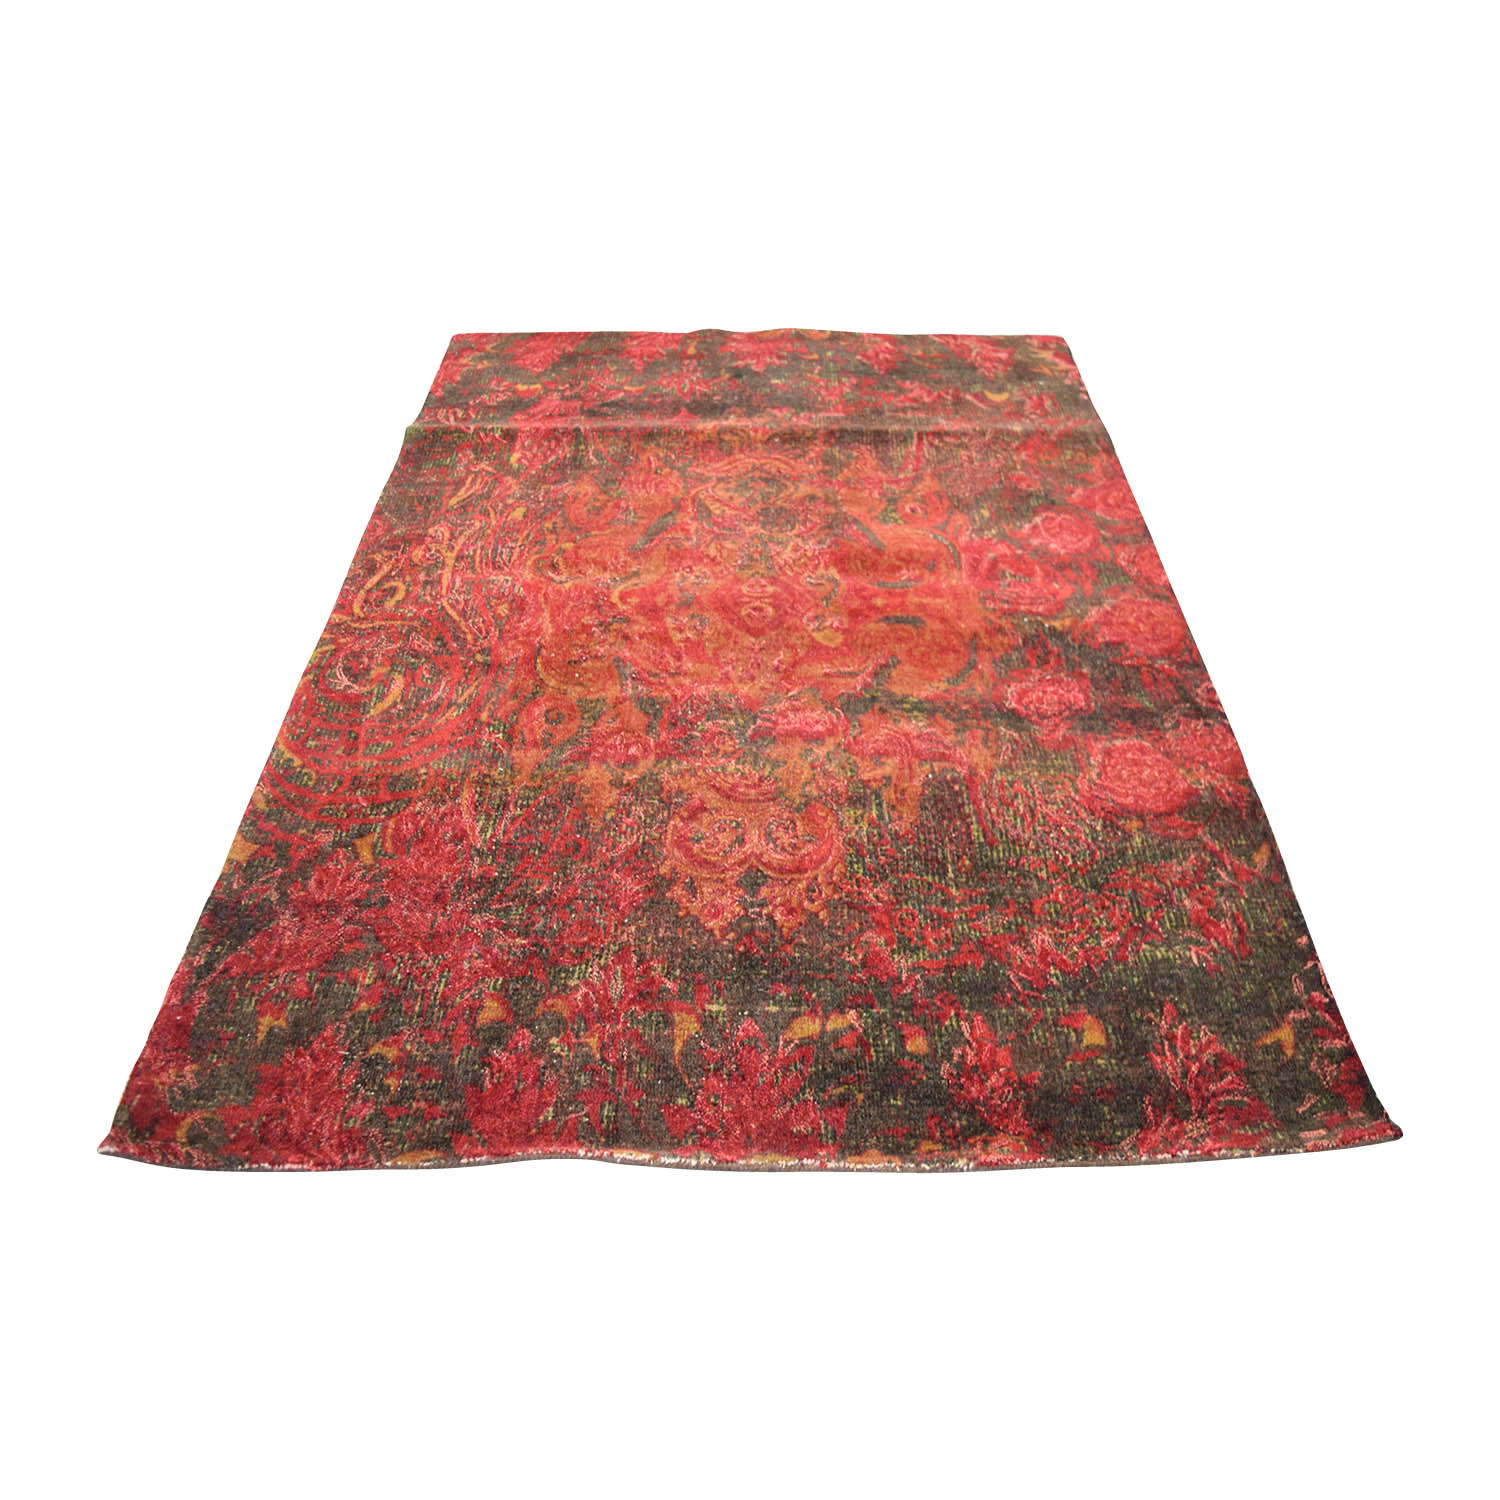 Obeetee Obeetee 5 X 8 Red Mahira Wool Rug on sale